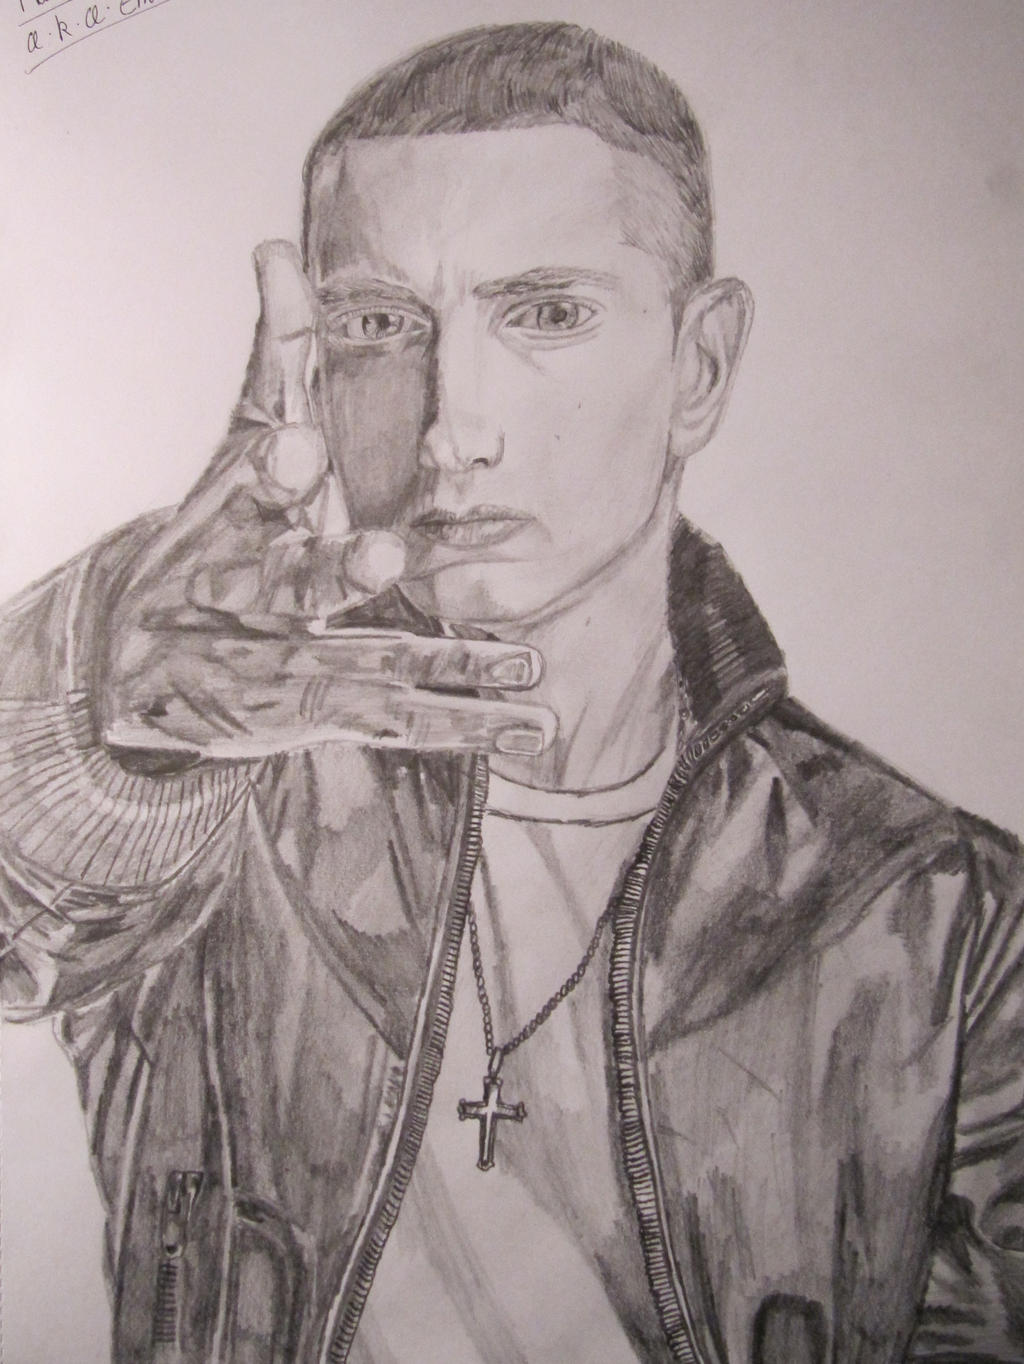 a biography of marshall bruce mathers iii Marshall bruce mathers iii (born october 17, 1972), known professionally as eminem (often stylized as eminǝm), is an american rapper, songwriter, record producer, record executive, and actor.